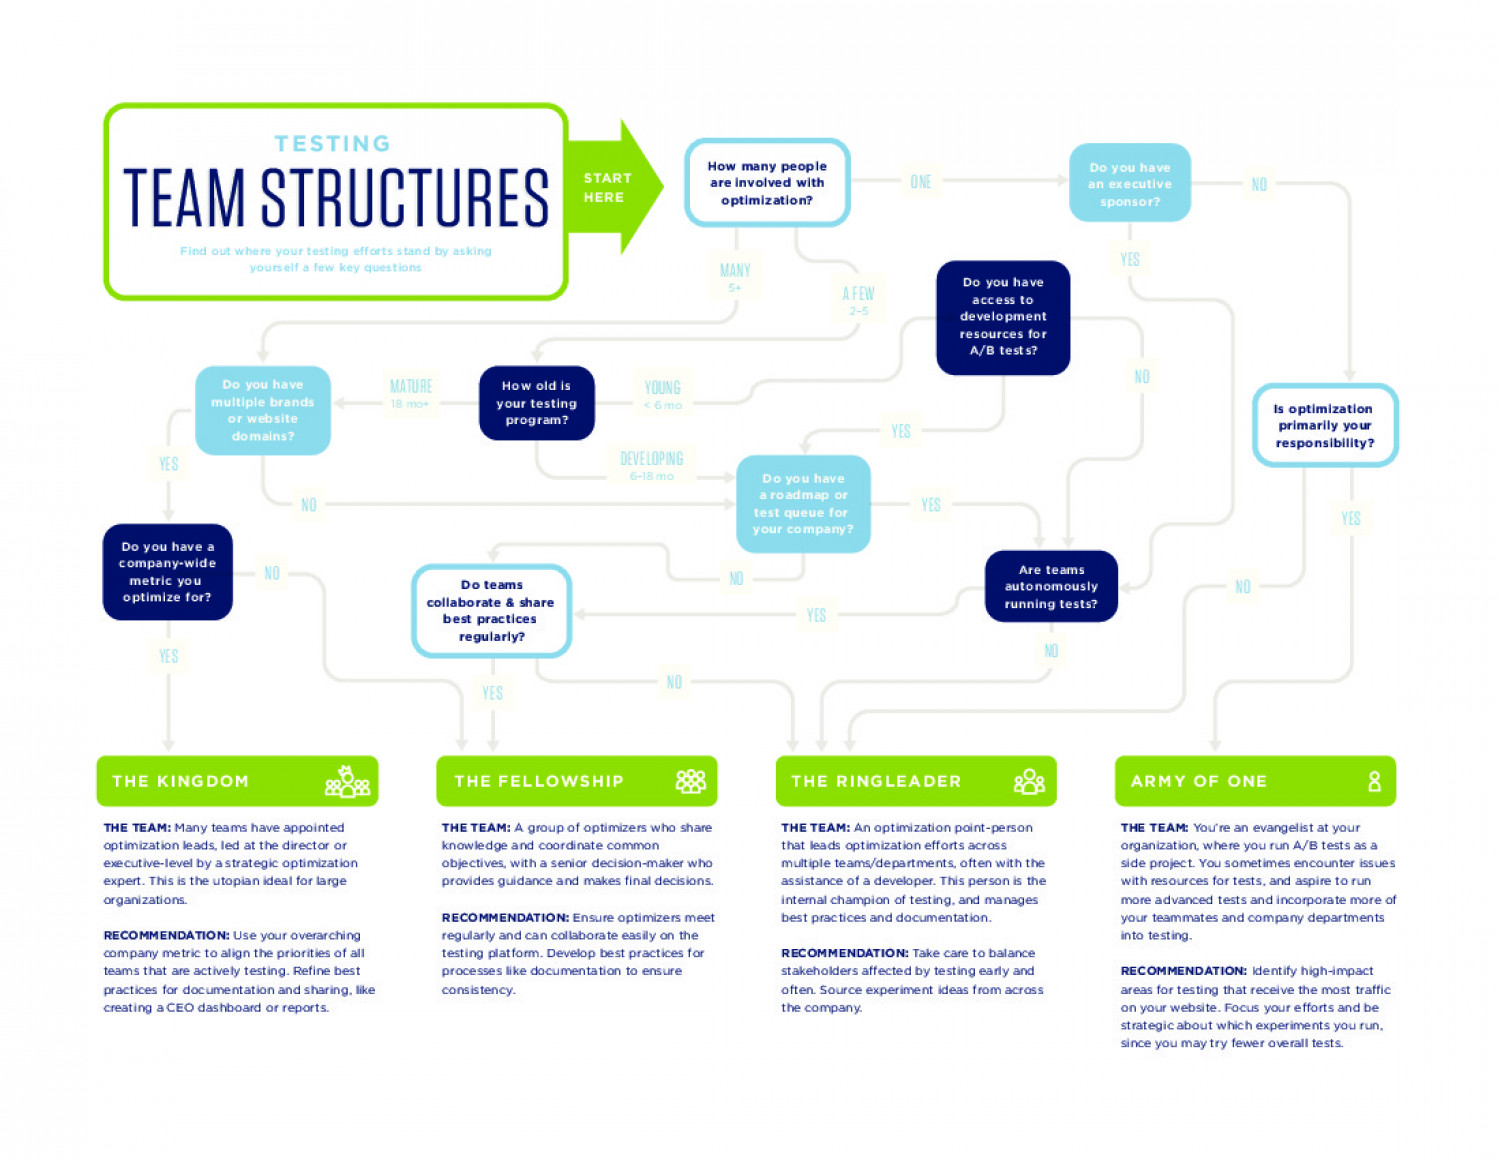 Experience Optimization Testing Team Structures Infographic